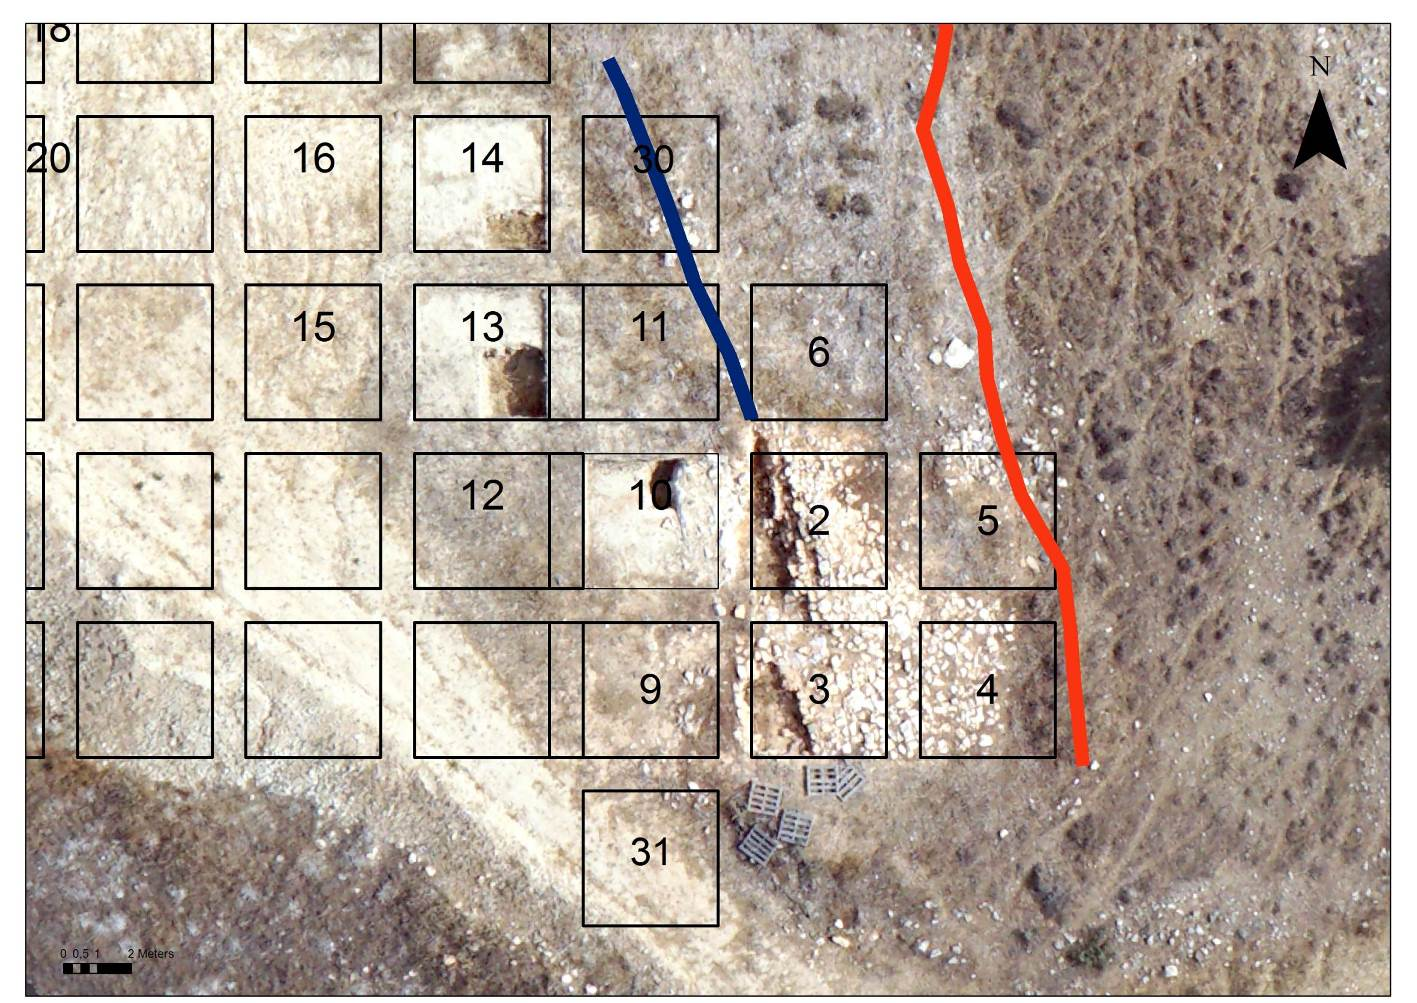 5. Plan of the southeastern side of the Laona plateau